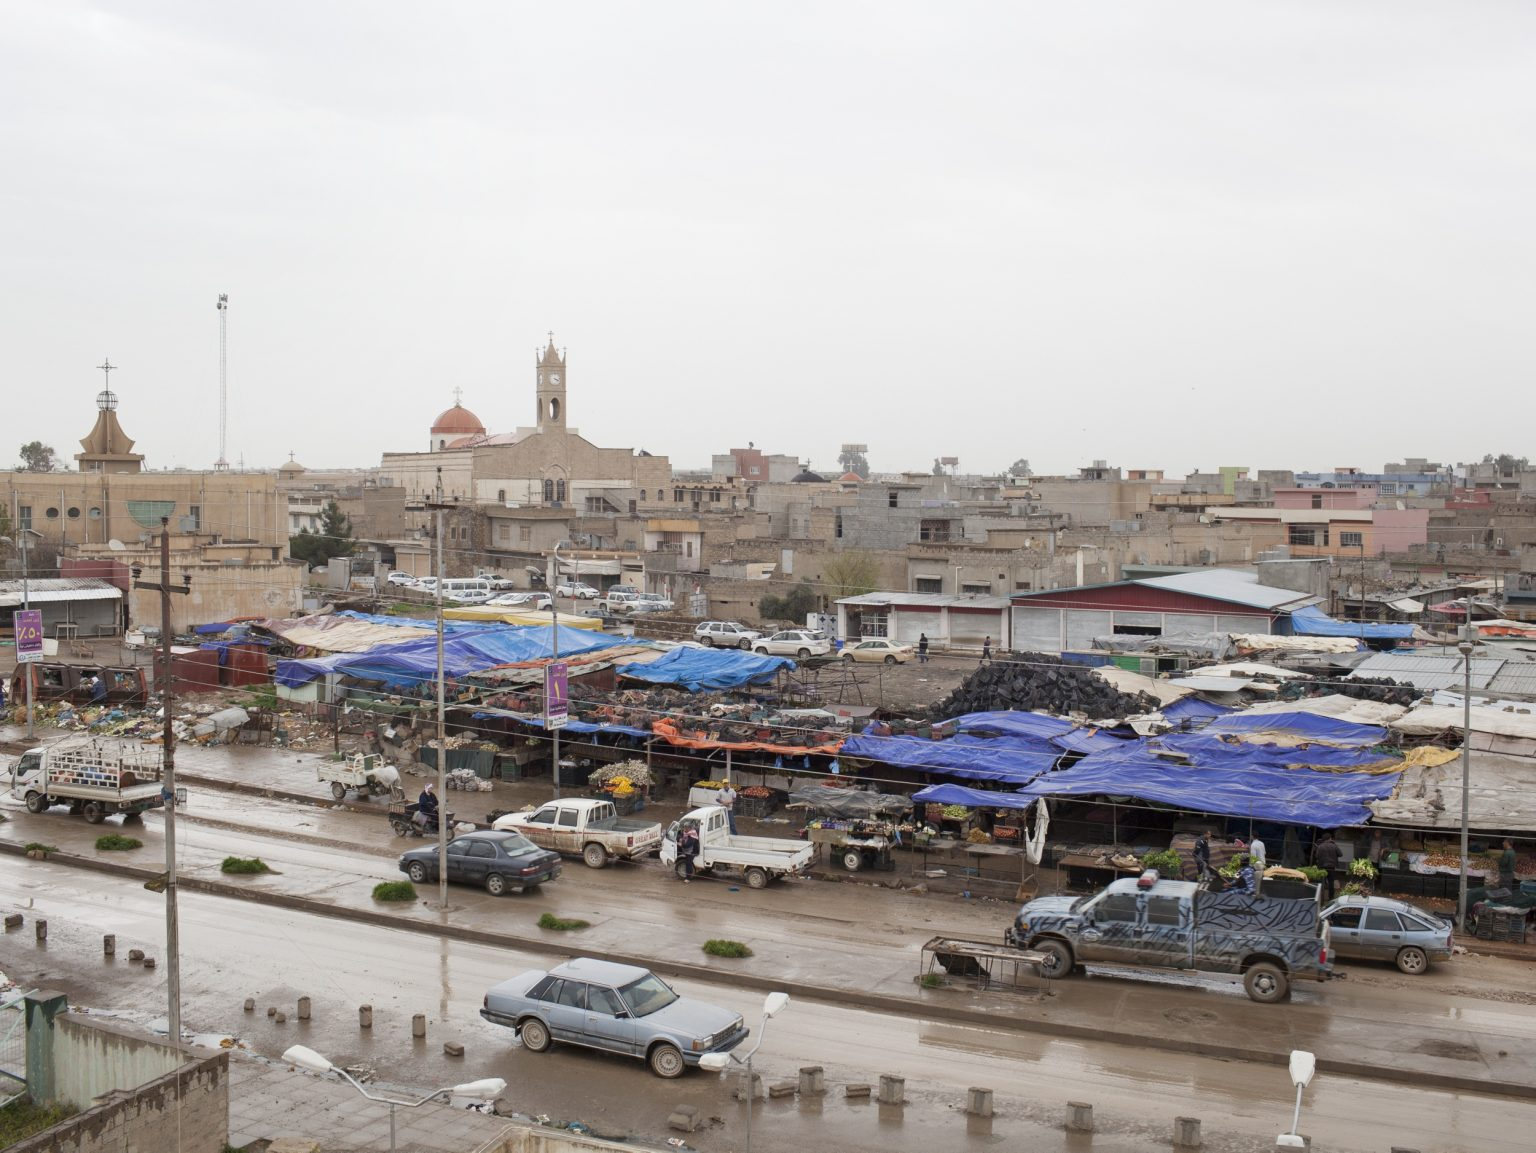 View of Qaraqosh, a Christian town on the border between Iraq and Kurdistan with seven churches. The municipality of Qaraqosh has been organizing a Christian militia in the city of Qaraqosh in order to protect the population from terroristic assoults.